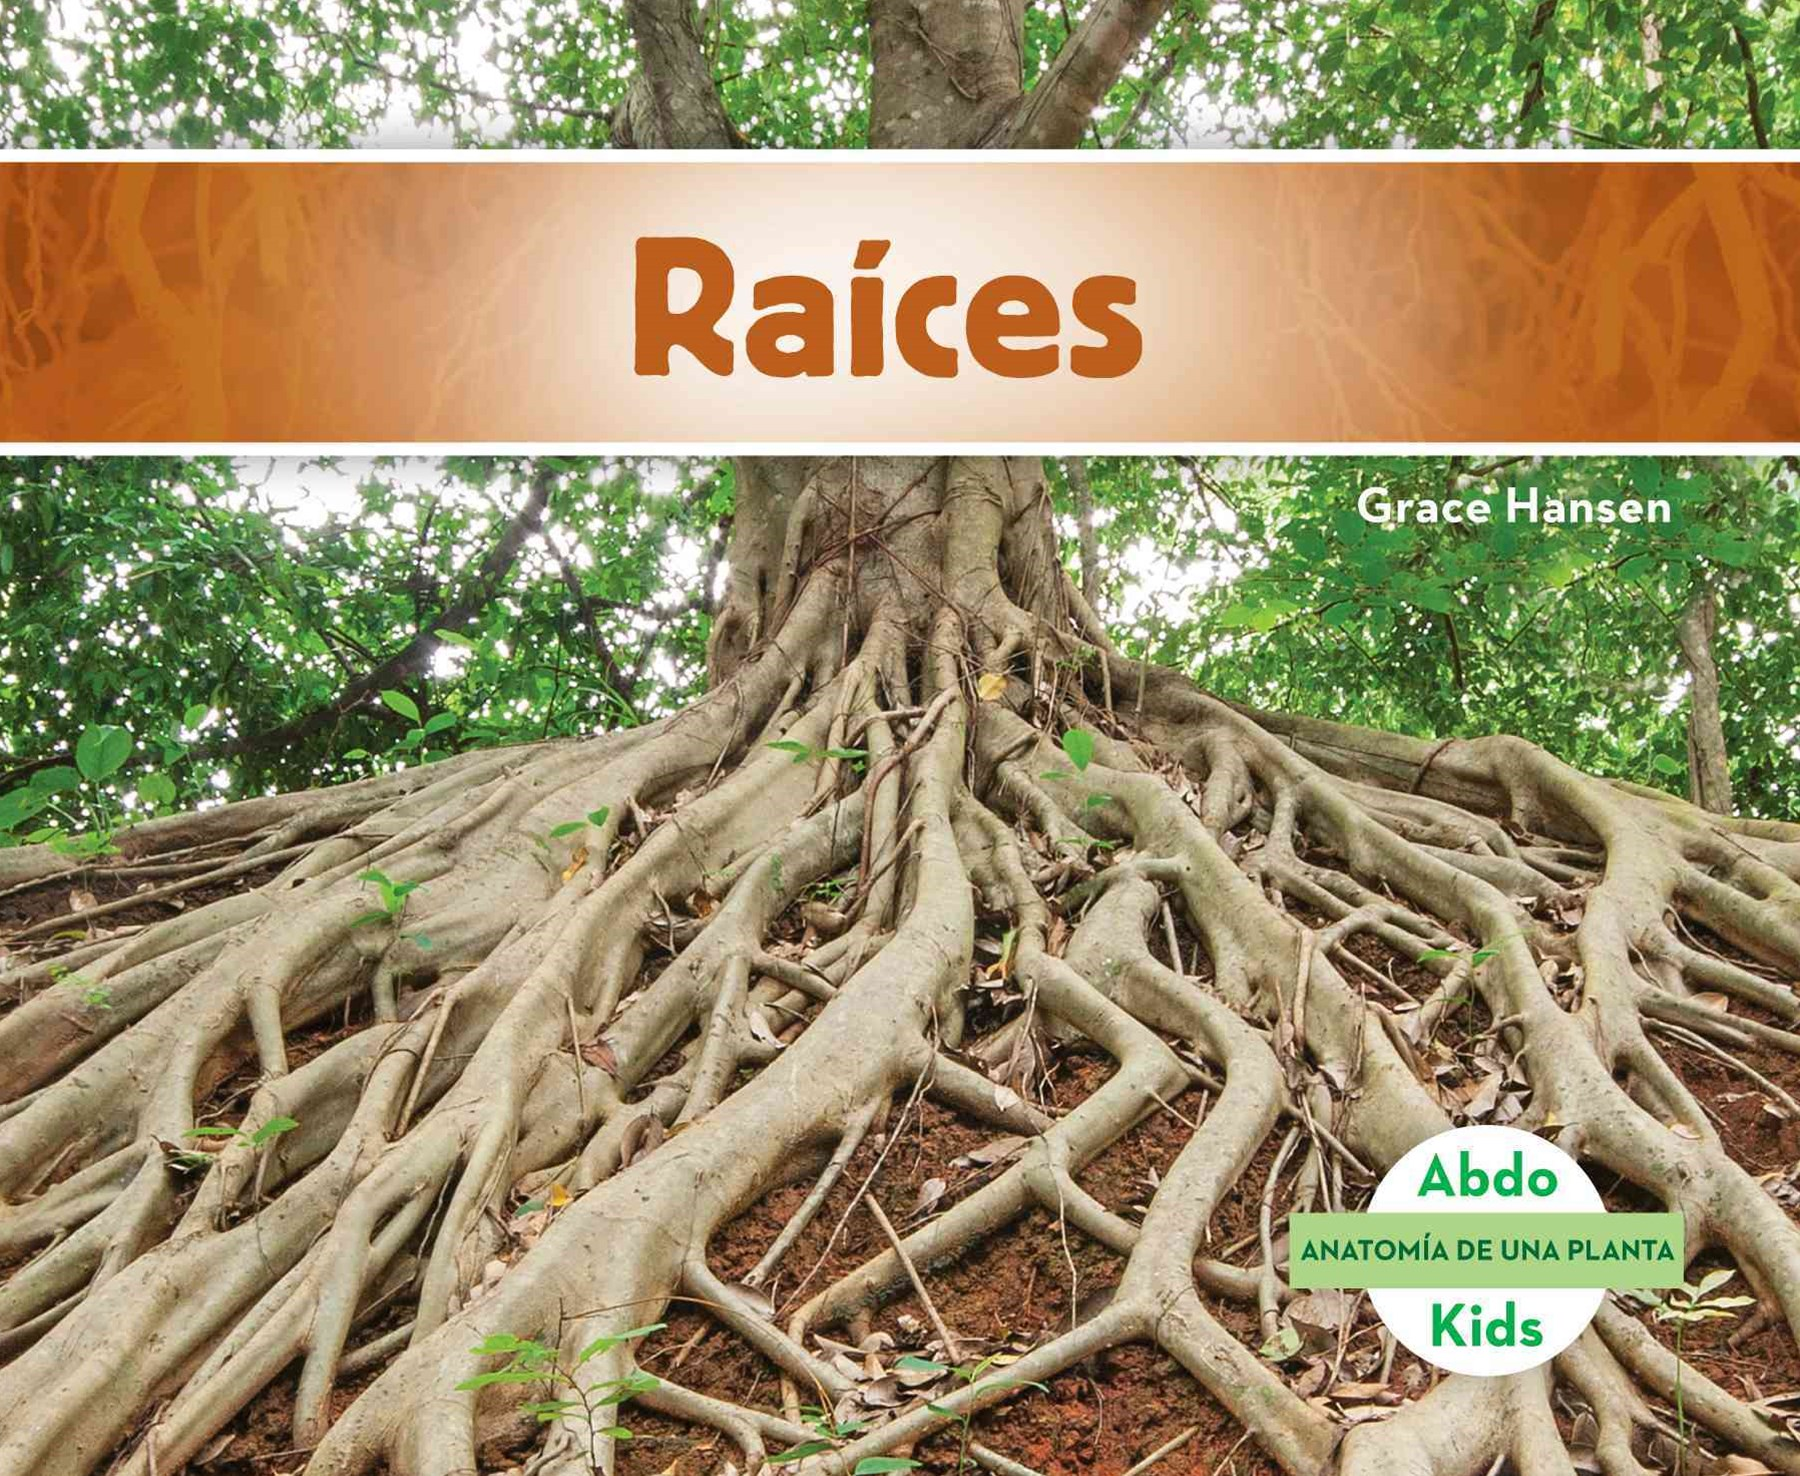 Raíces (Roots)